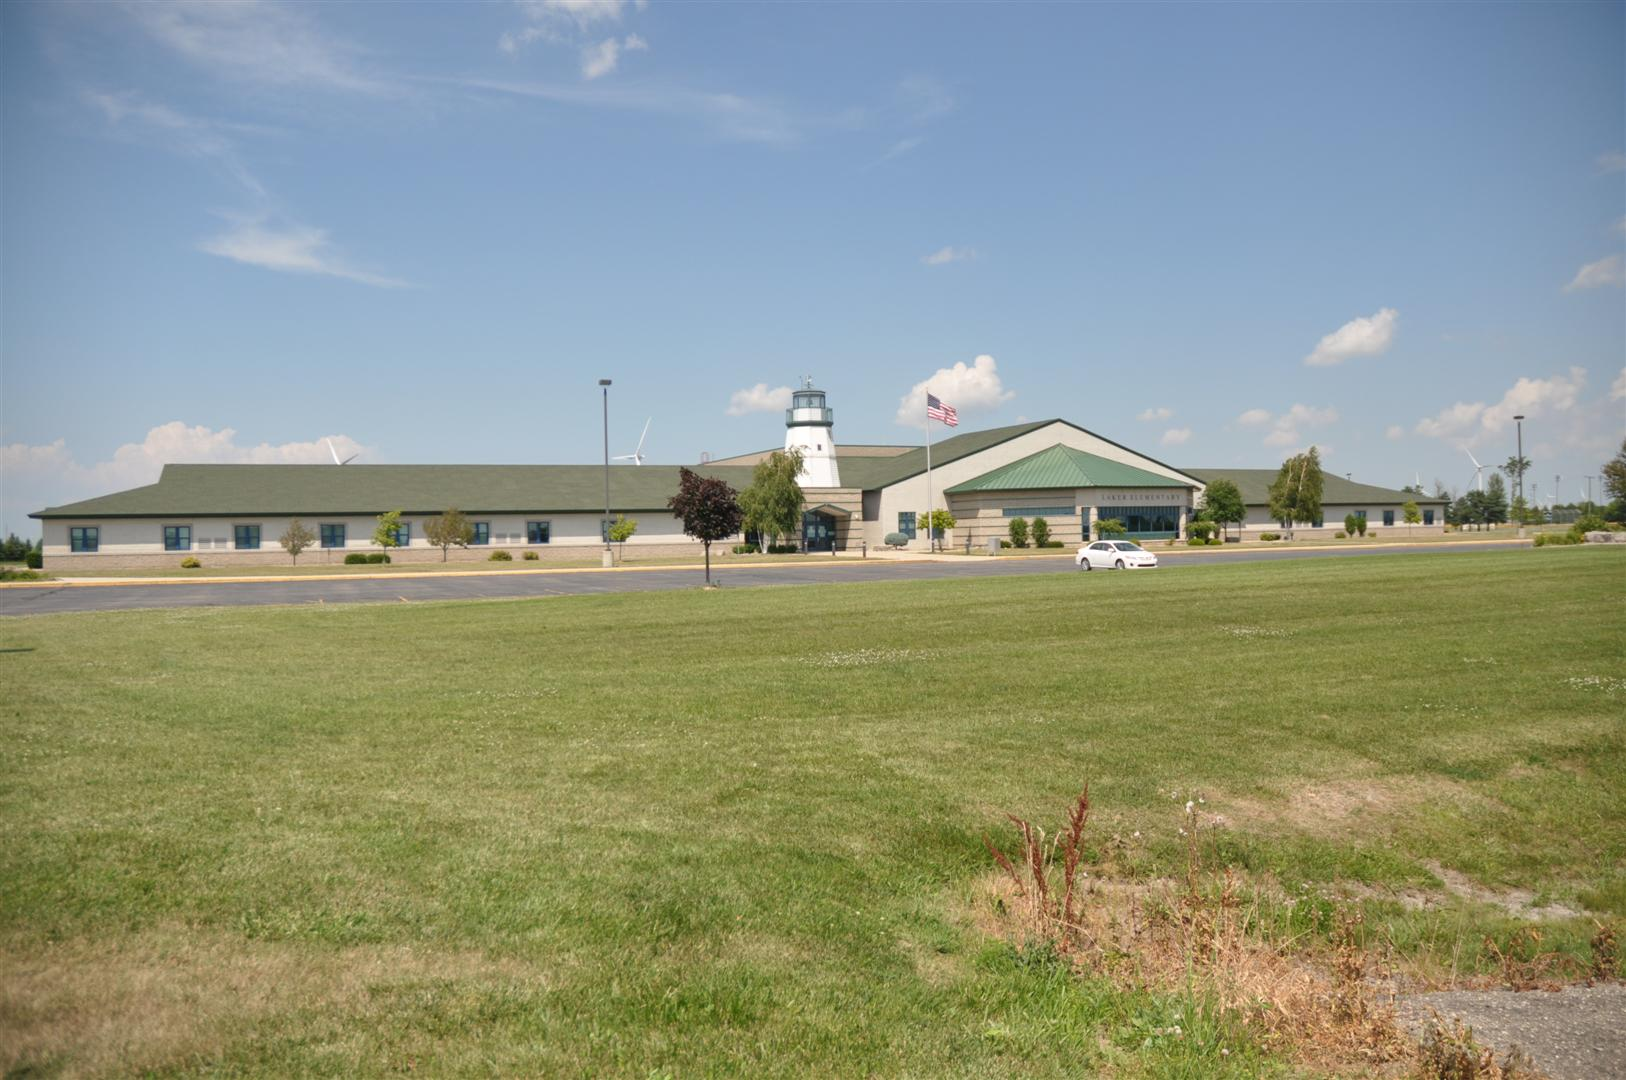 Picture of Elkton-Pigeon-Bay Port Lakers School Building